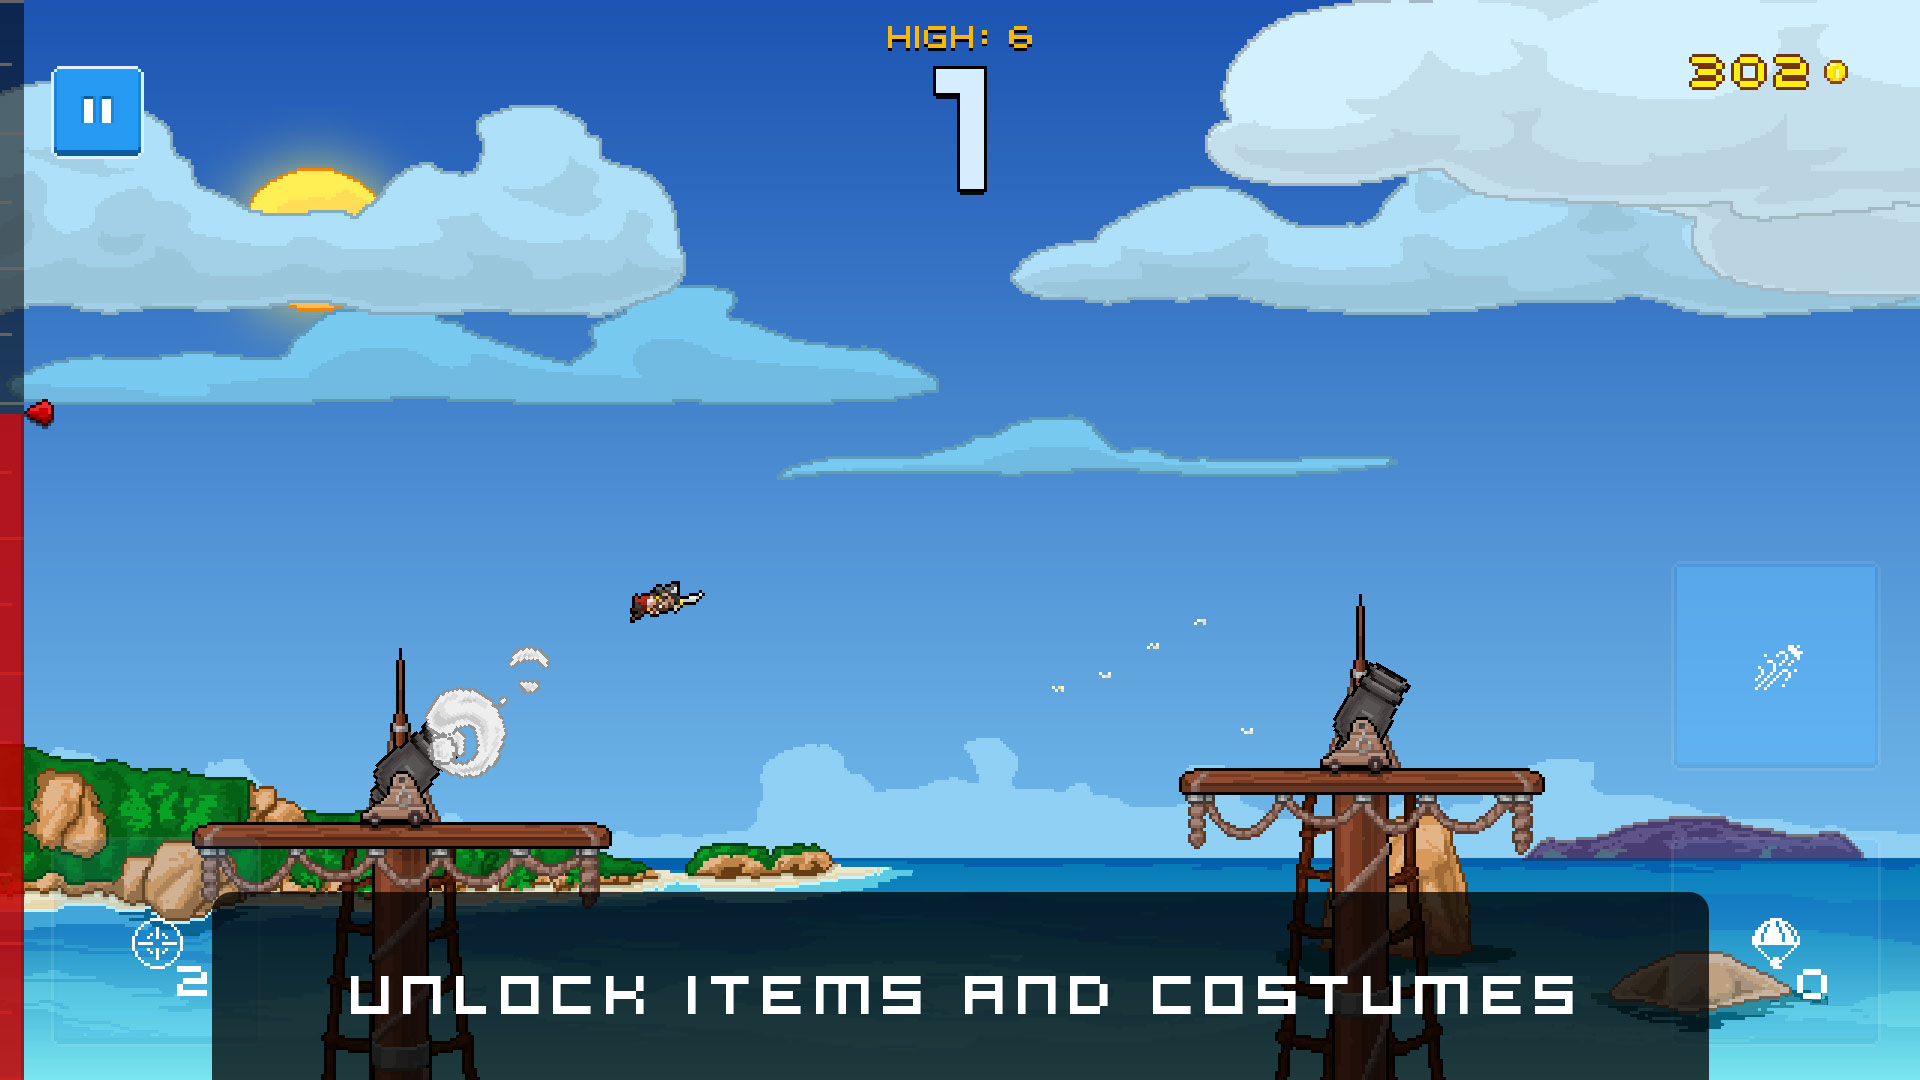 Human Cannonball - Unlock items and skins